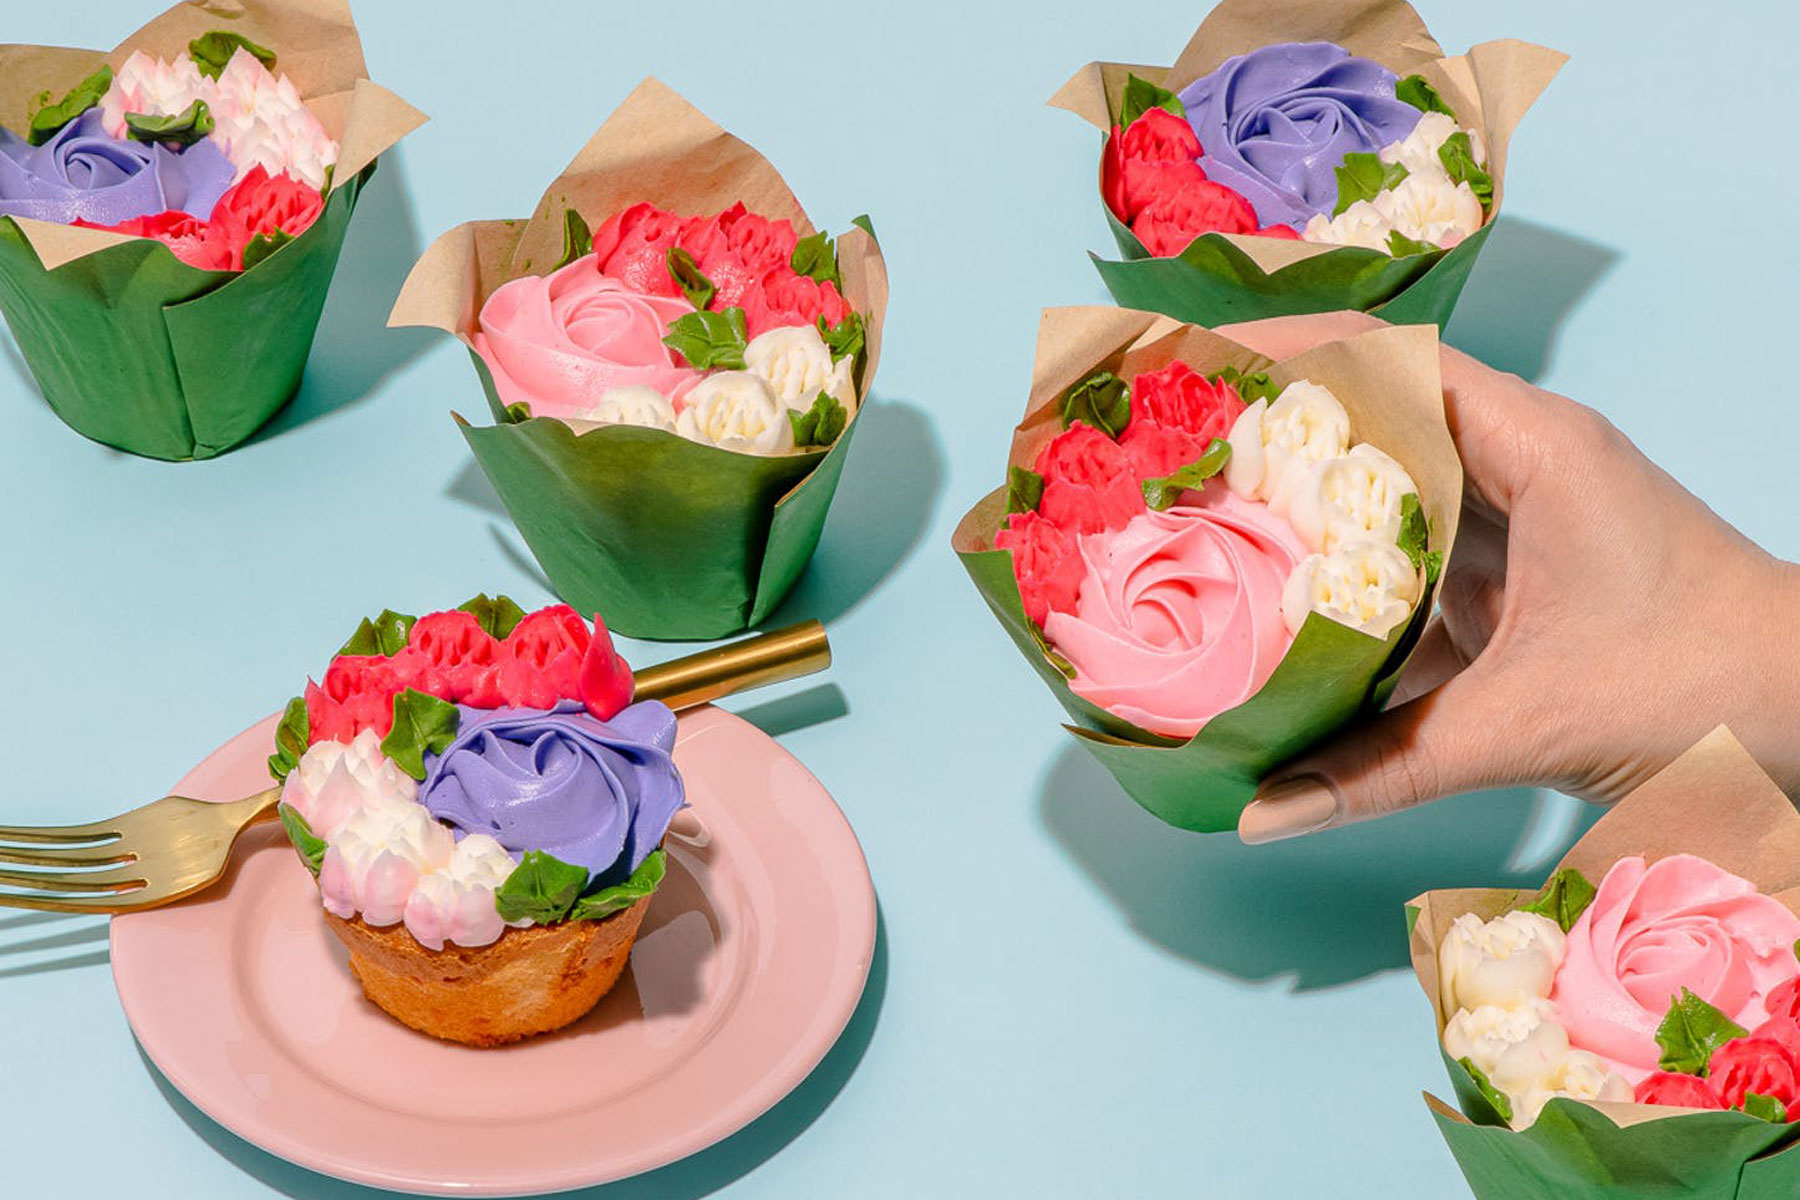 Cupcakes with floral bouquet design